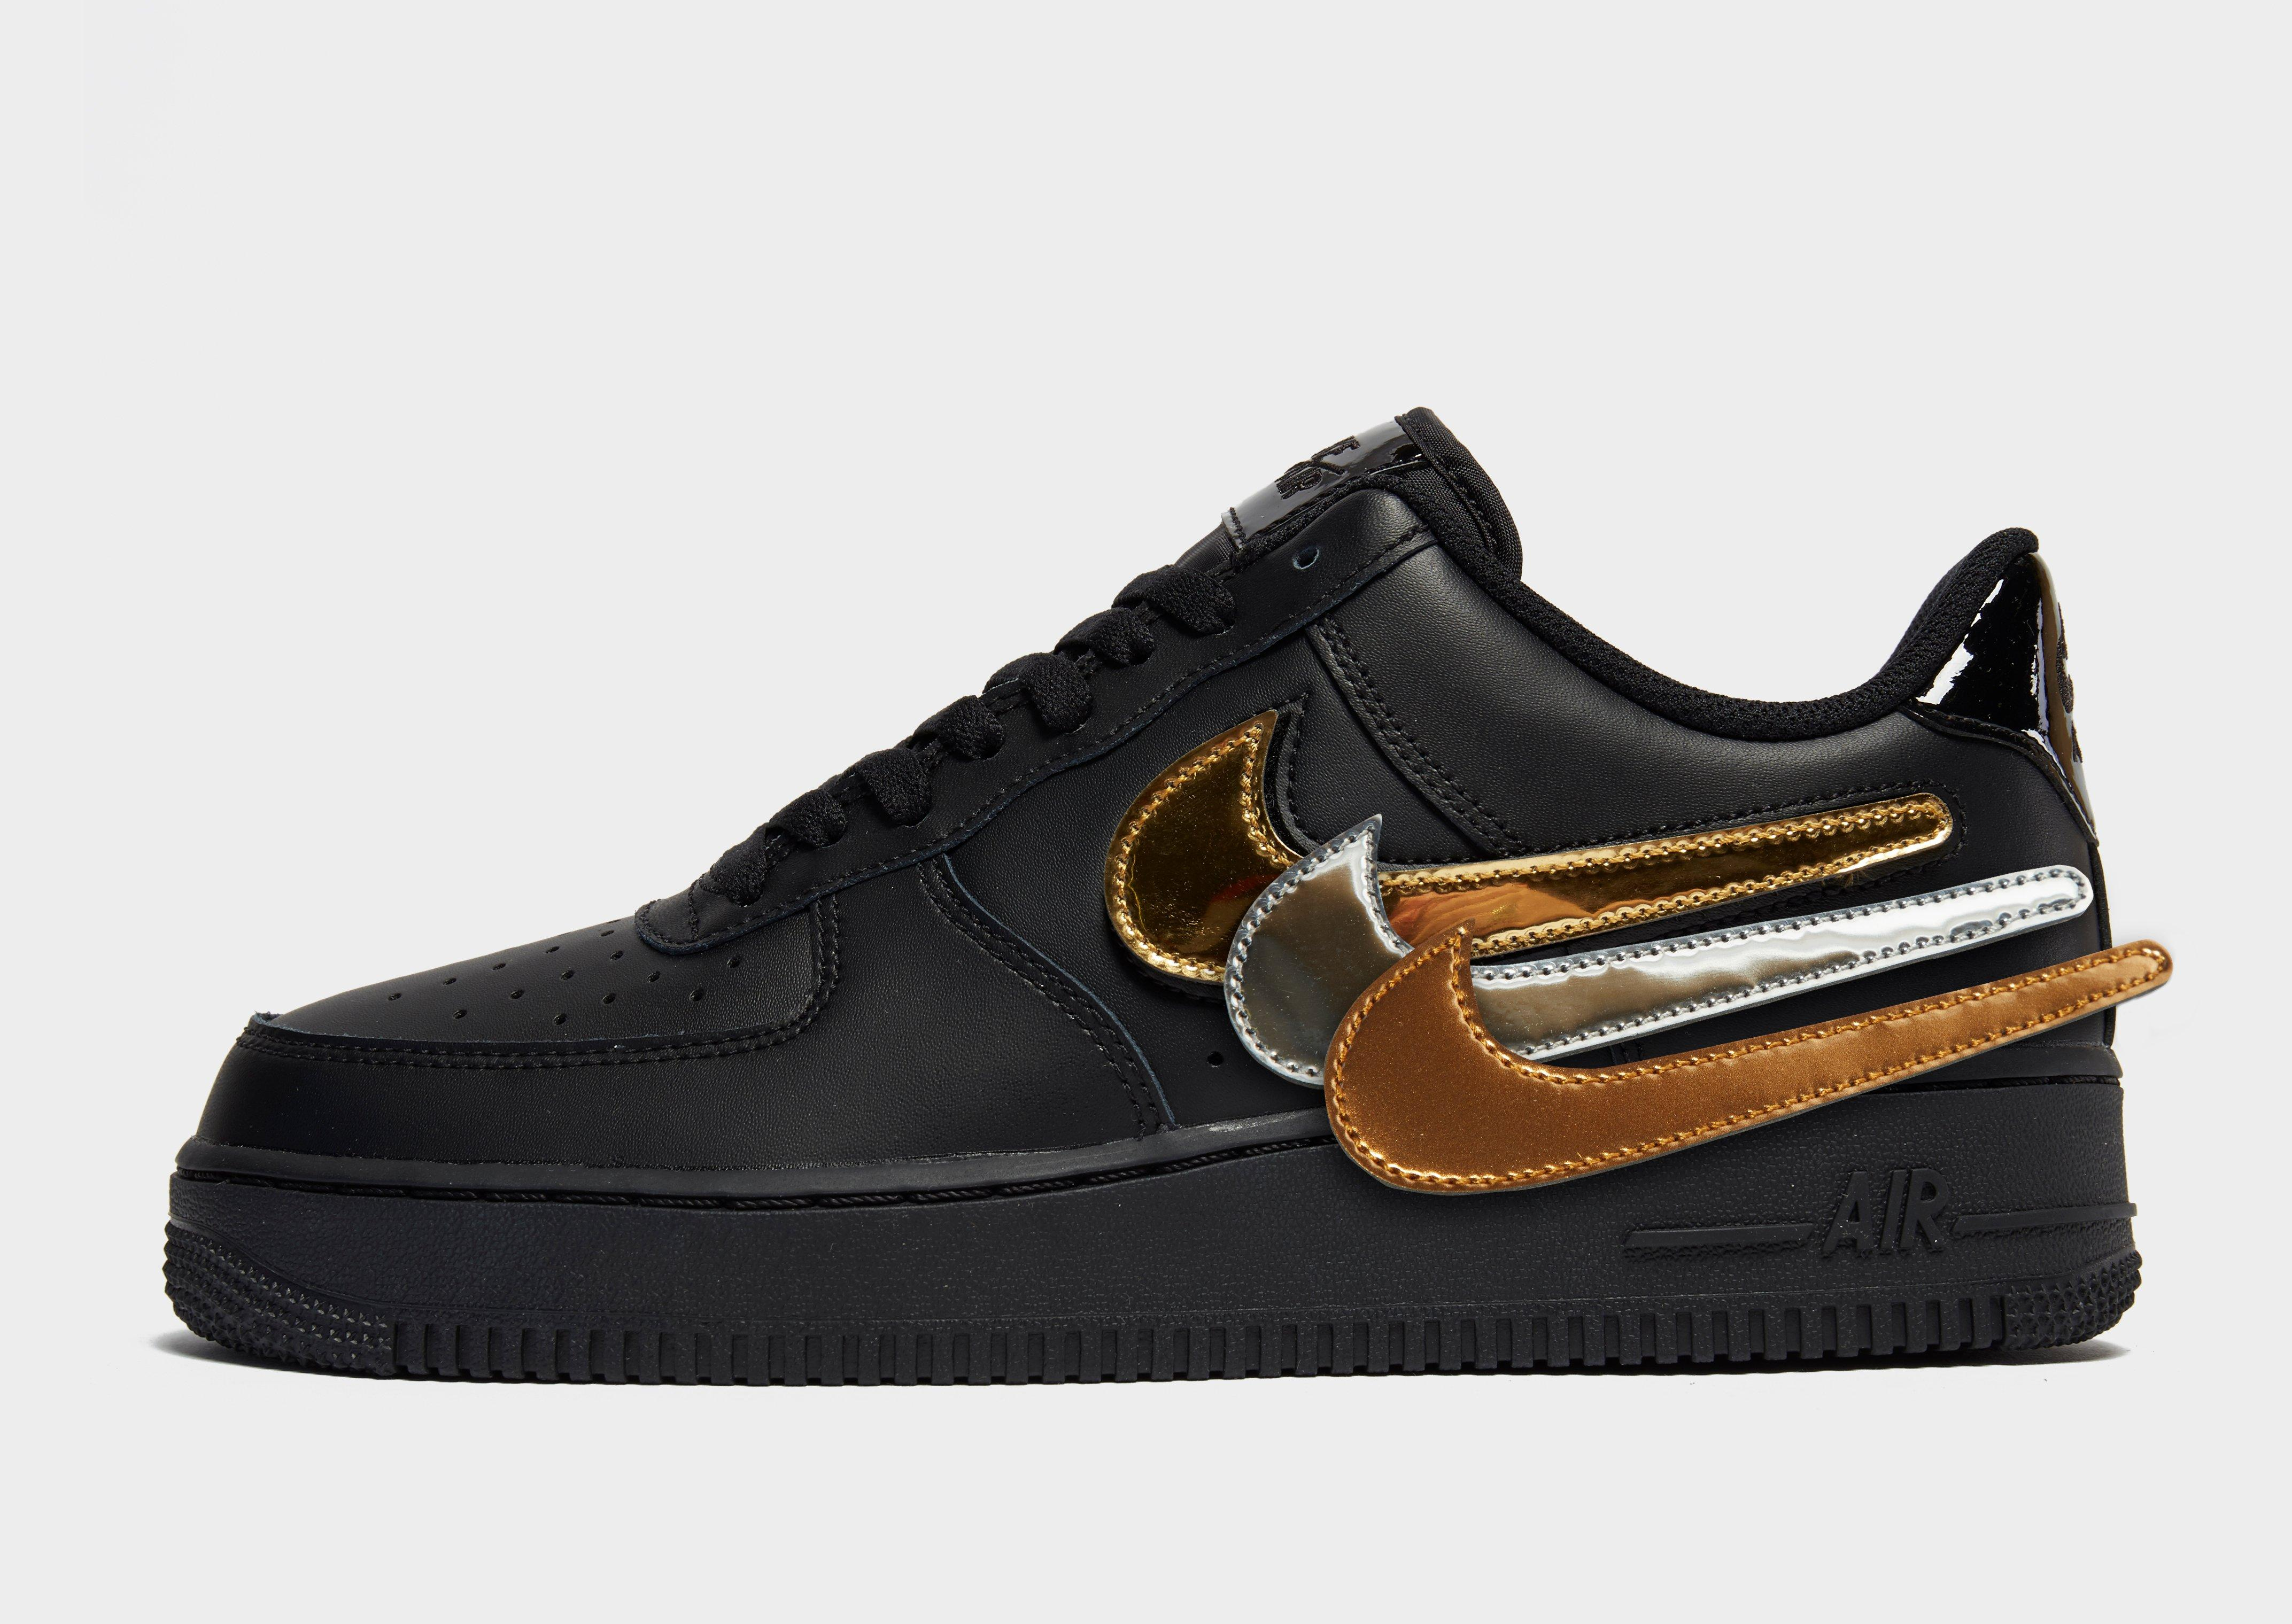 nike air force con strappo online